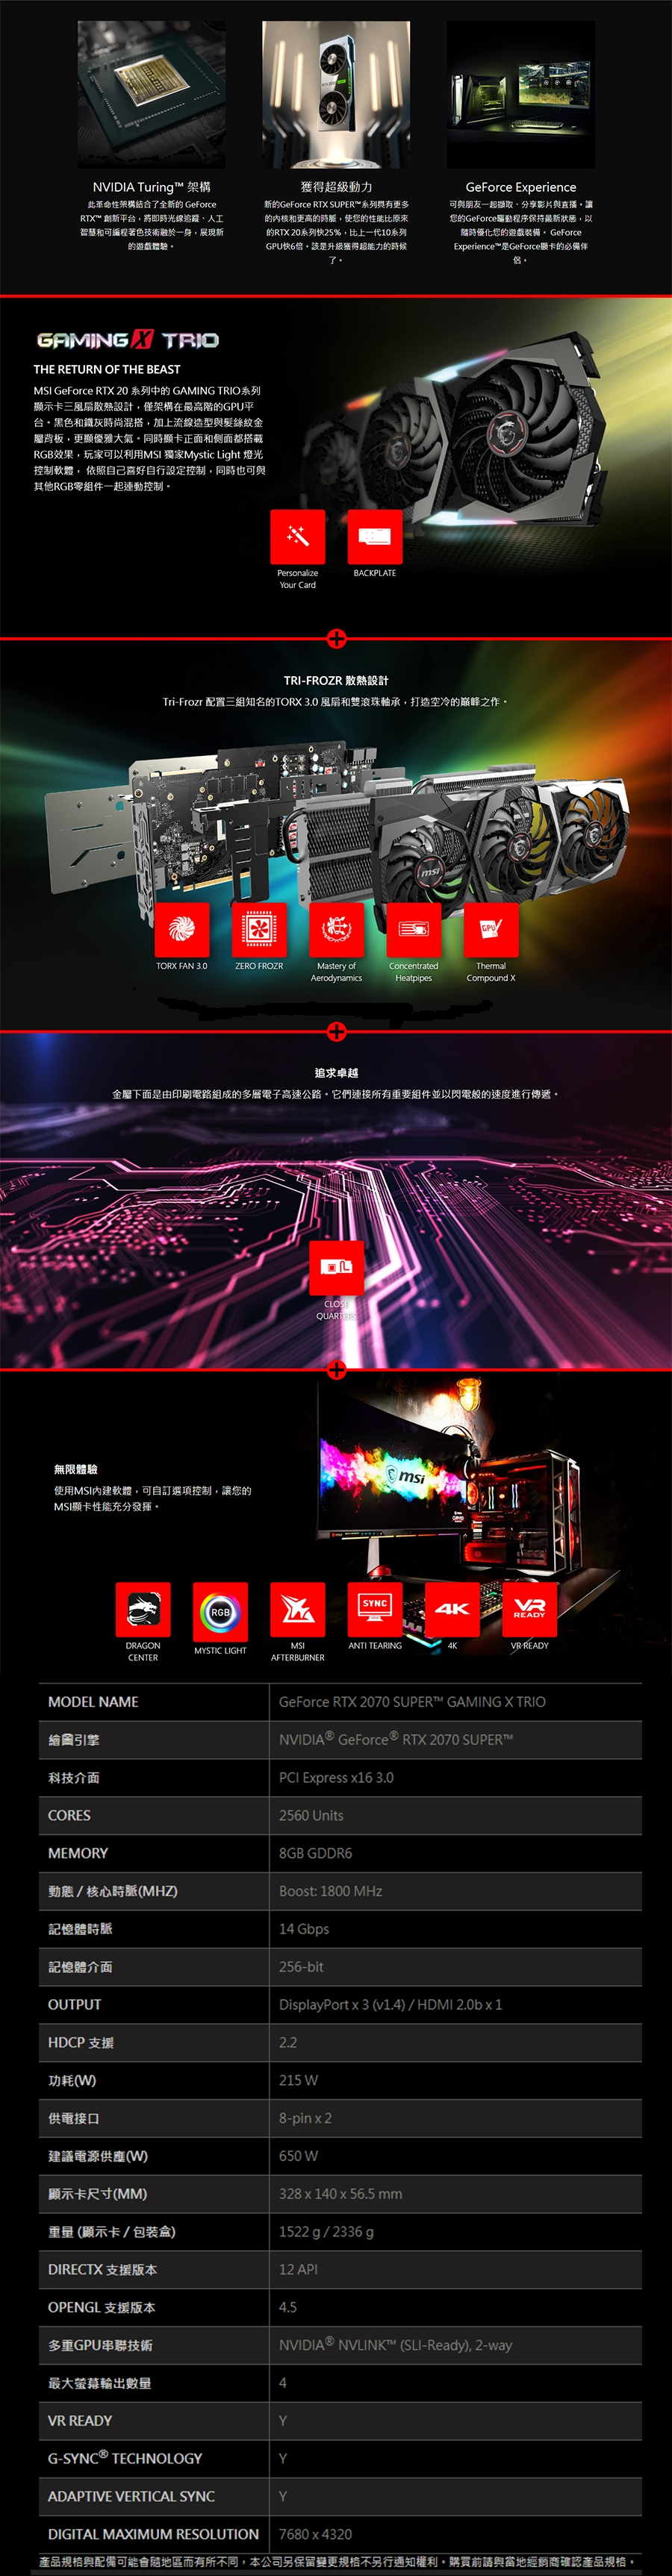 MSI GeForce RTX 2070 SUPER GAMING X TRIO 顯示卡